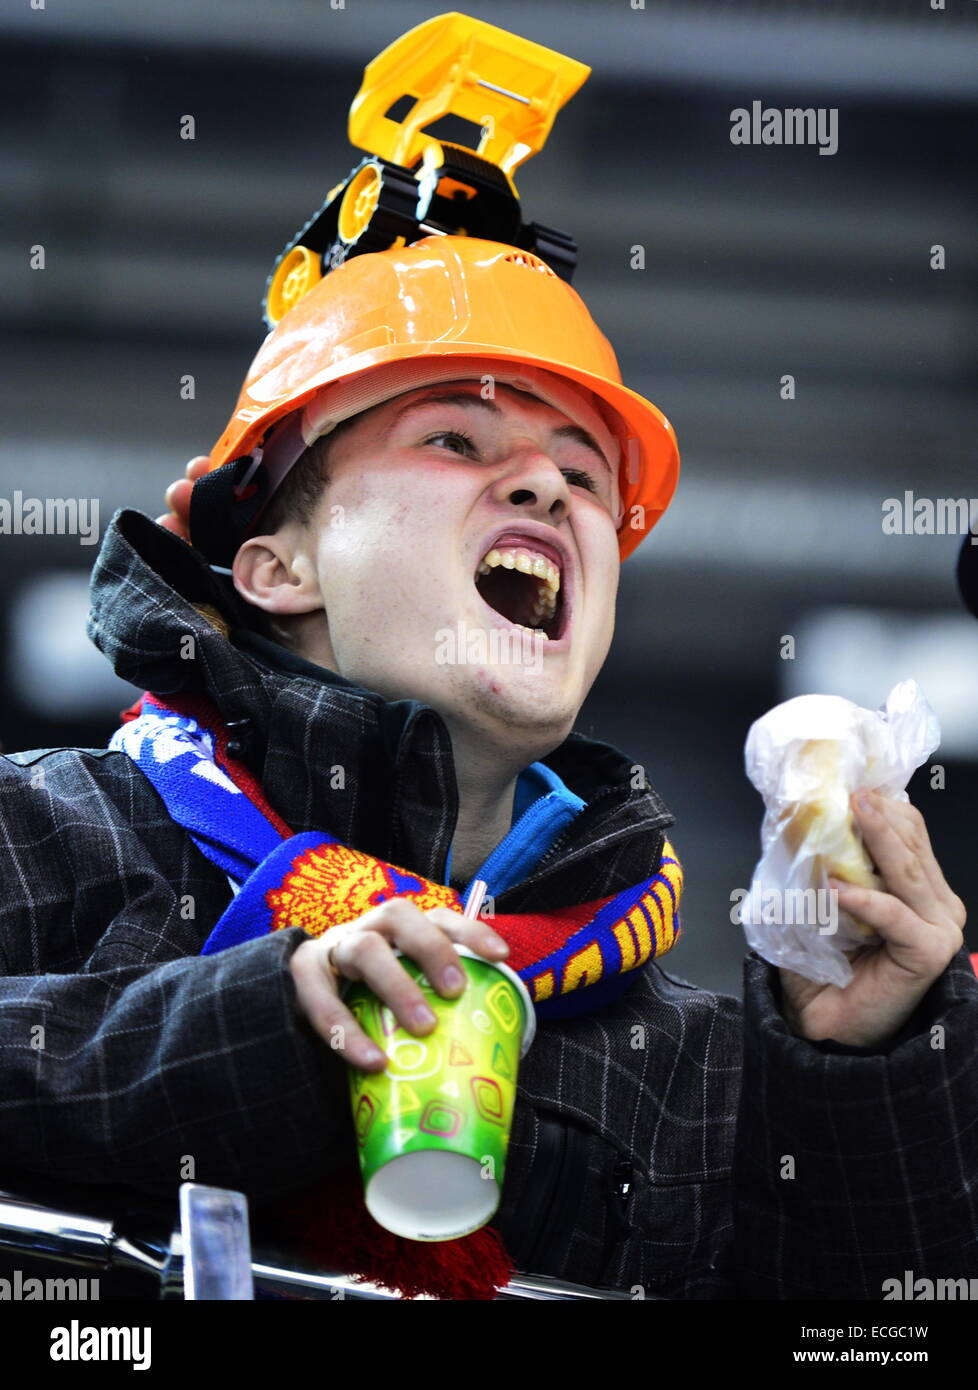 Image result for fan wearing hard hat